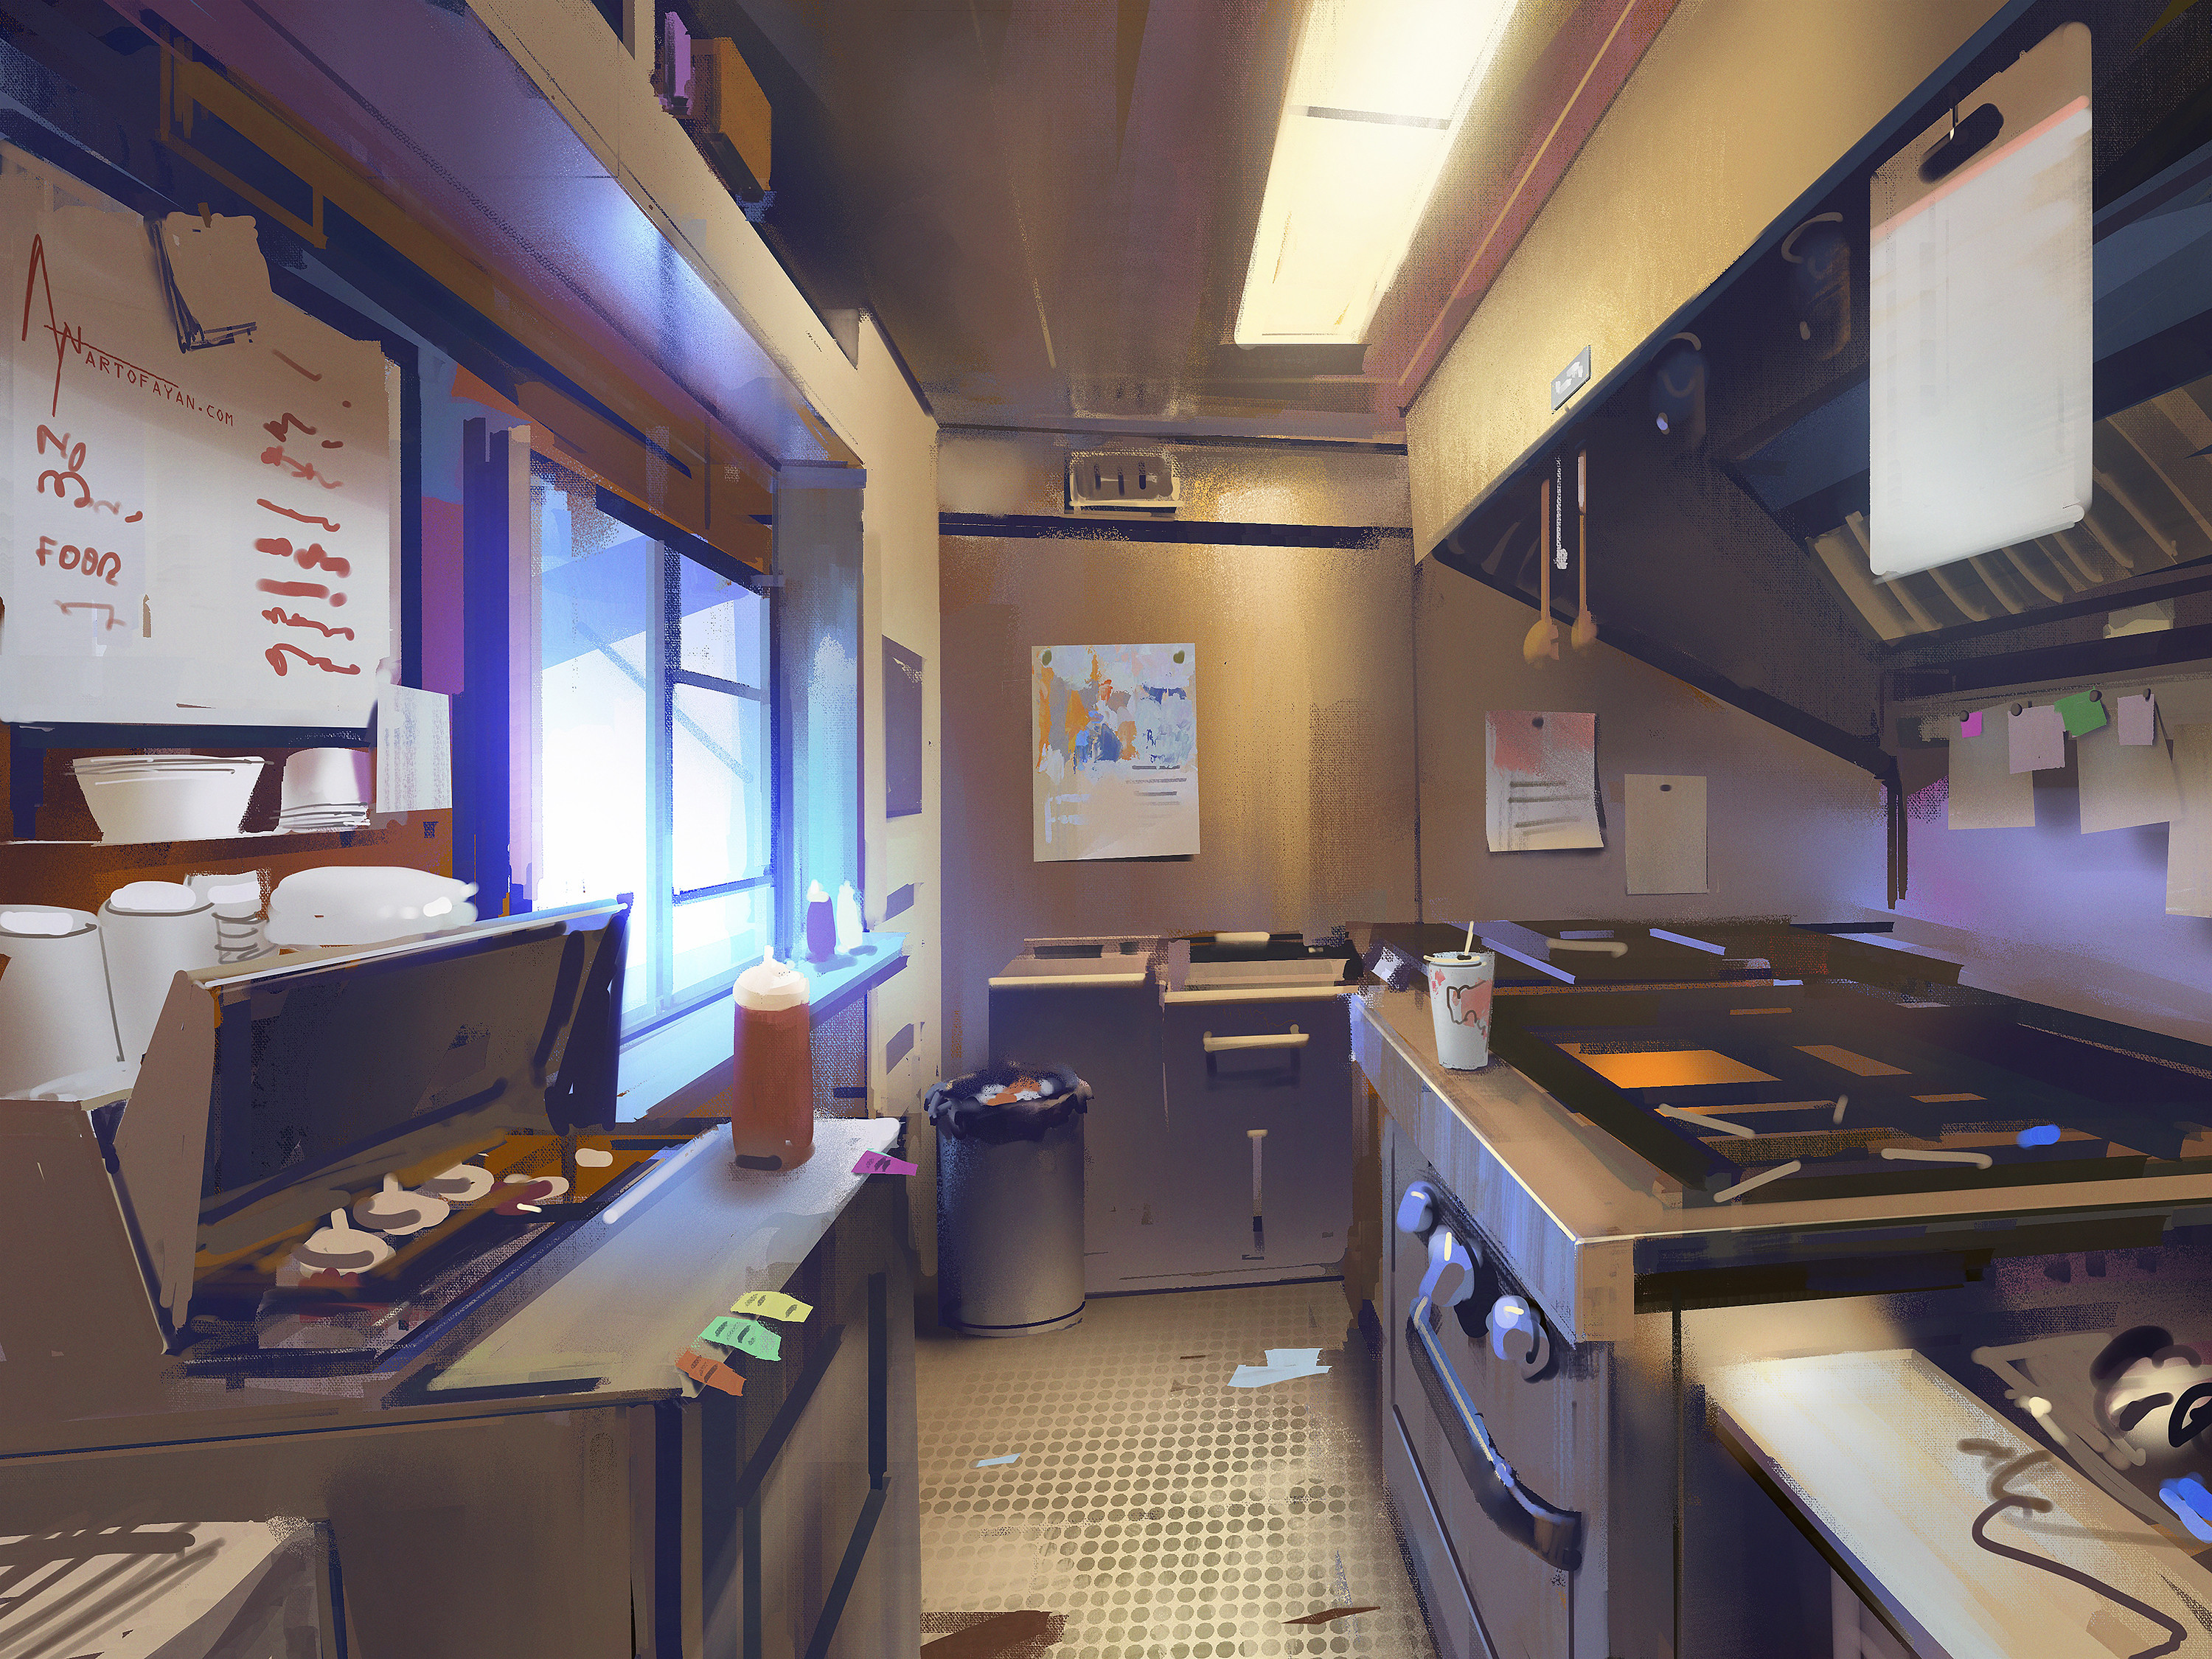 A fun interior painting of a food truck during the break(so I don't have to paint humans )🙃